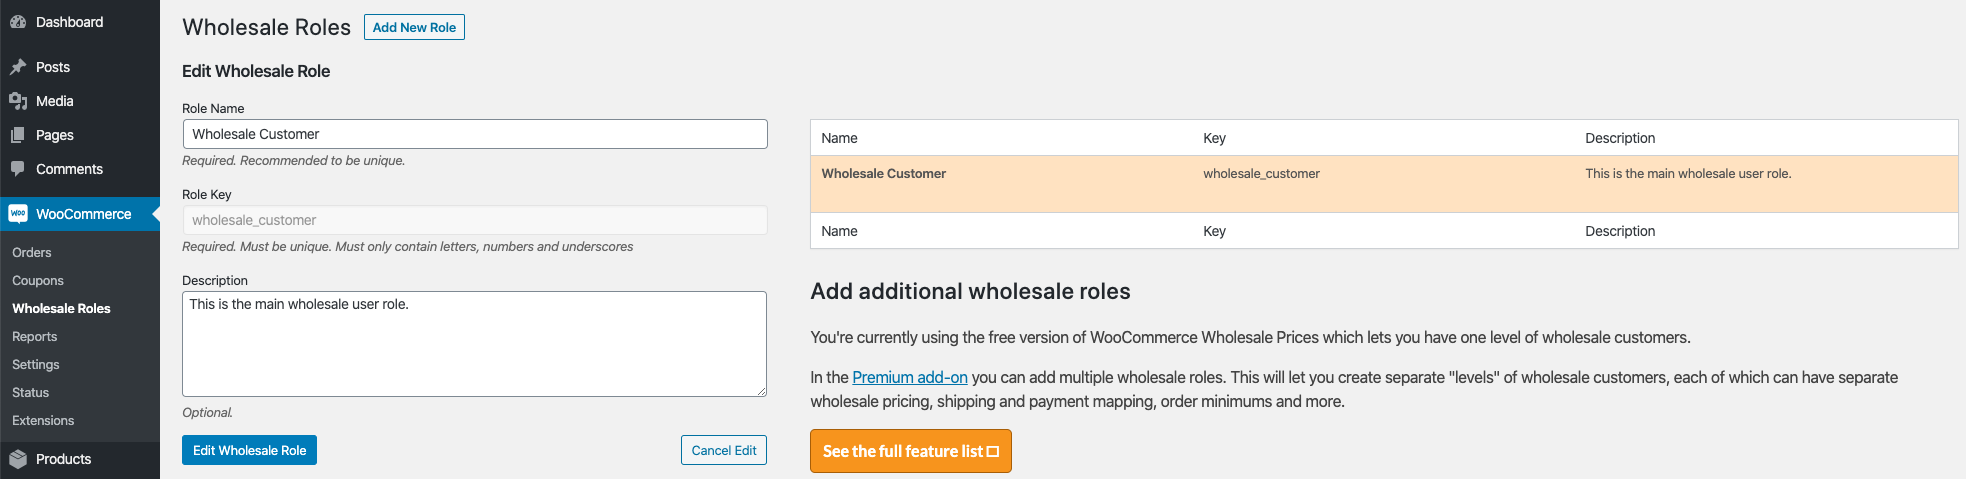 WooCommerce Wholesale Roles Editing